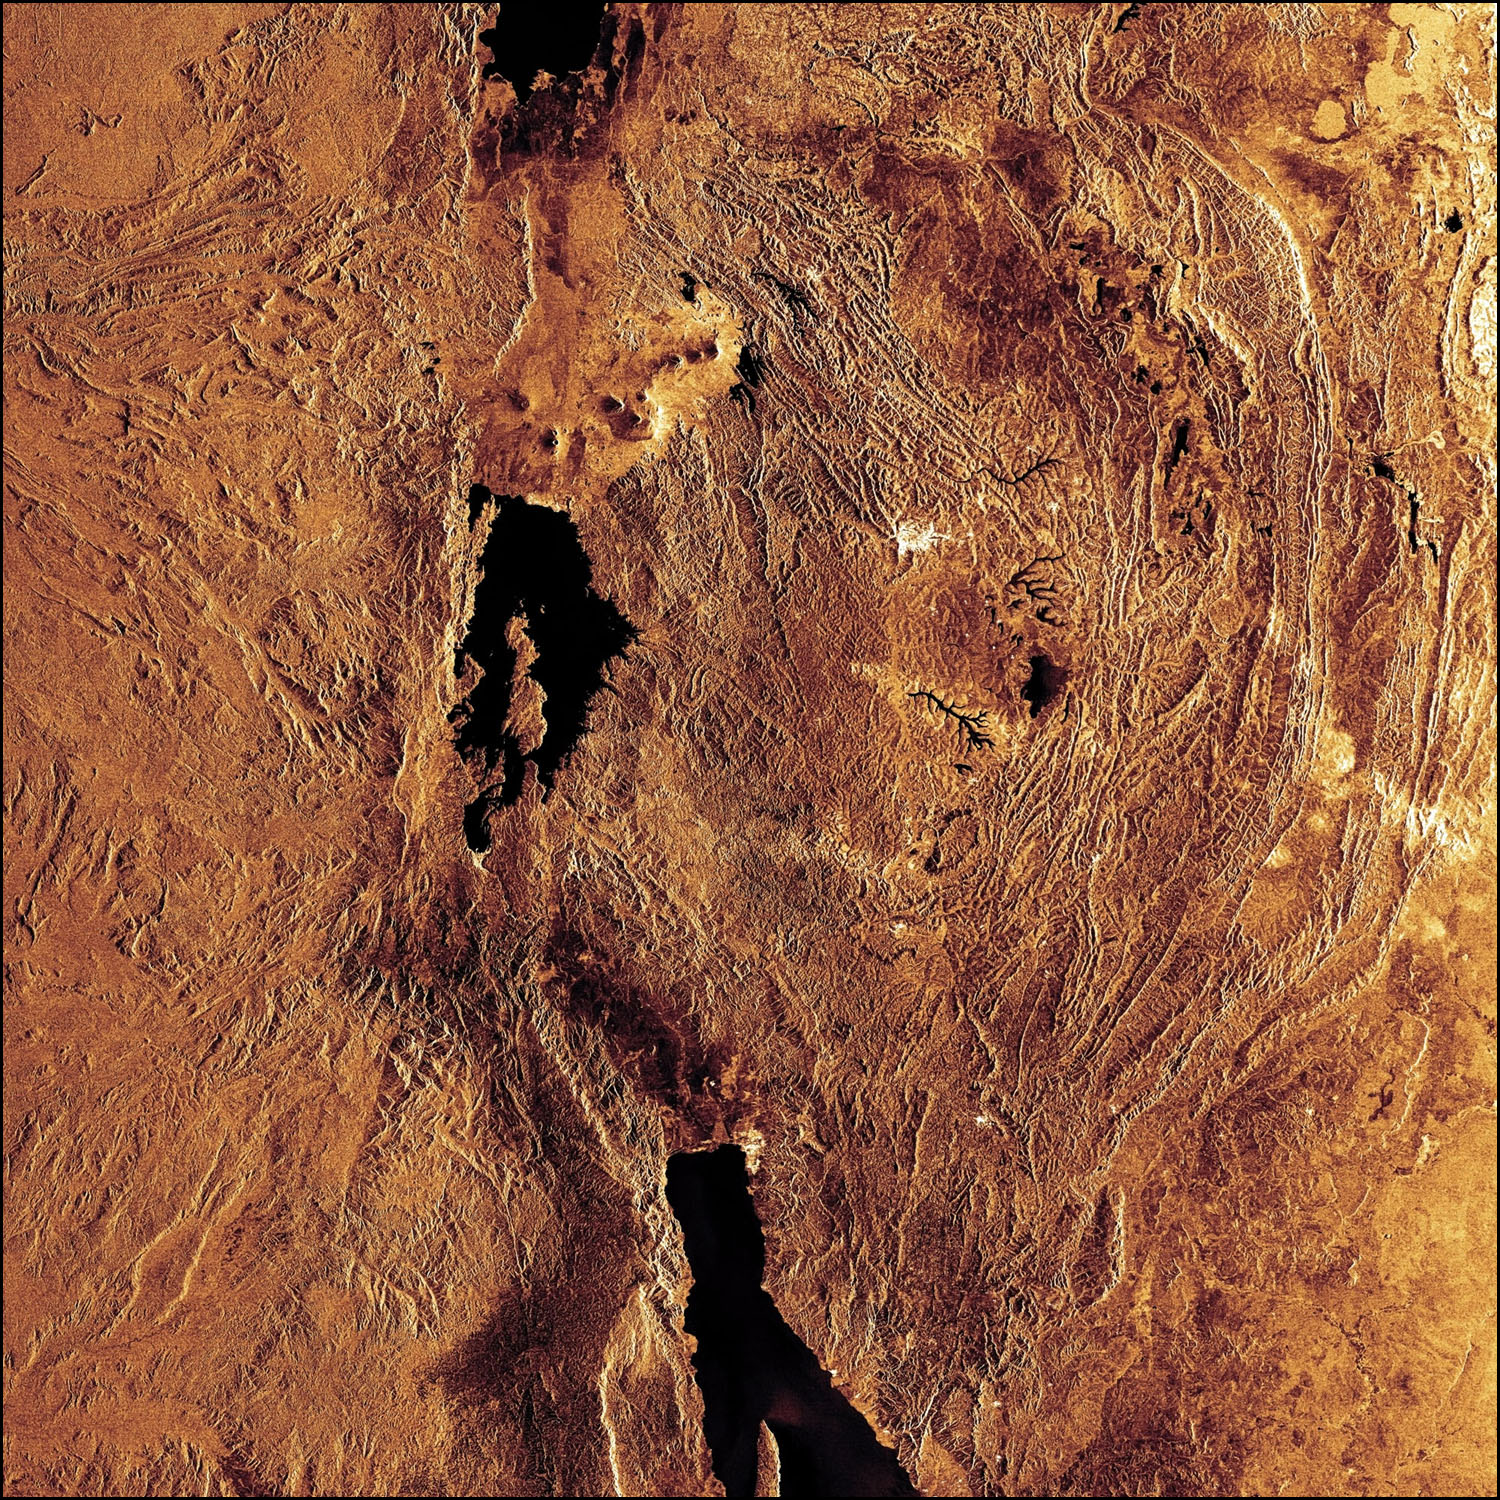 Satellite Image of Great Lakes of Africa